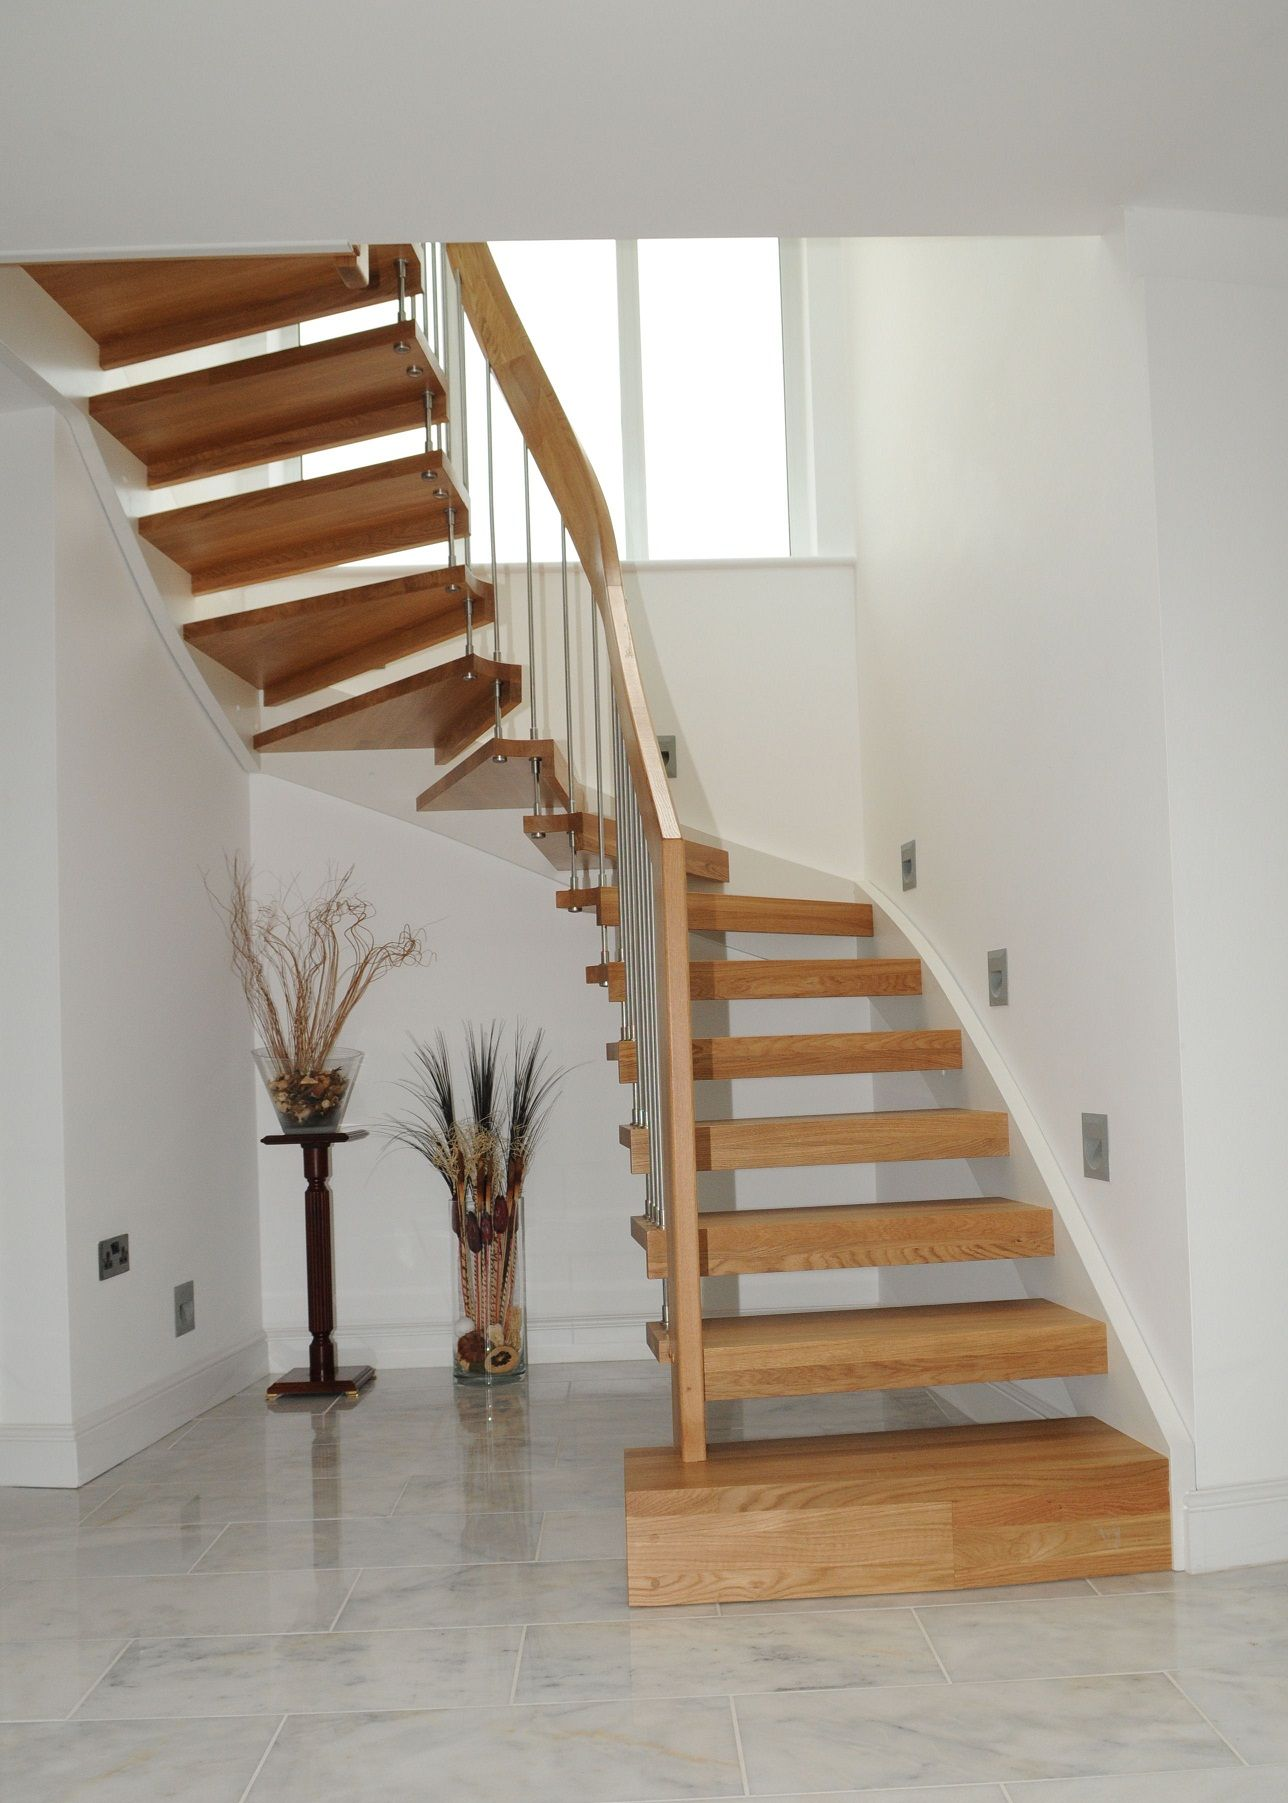 Balustrade Tangga 10 Standout Stair Railings And Why They Work